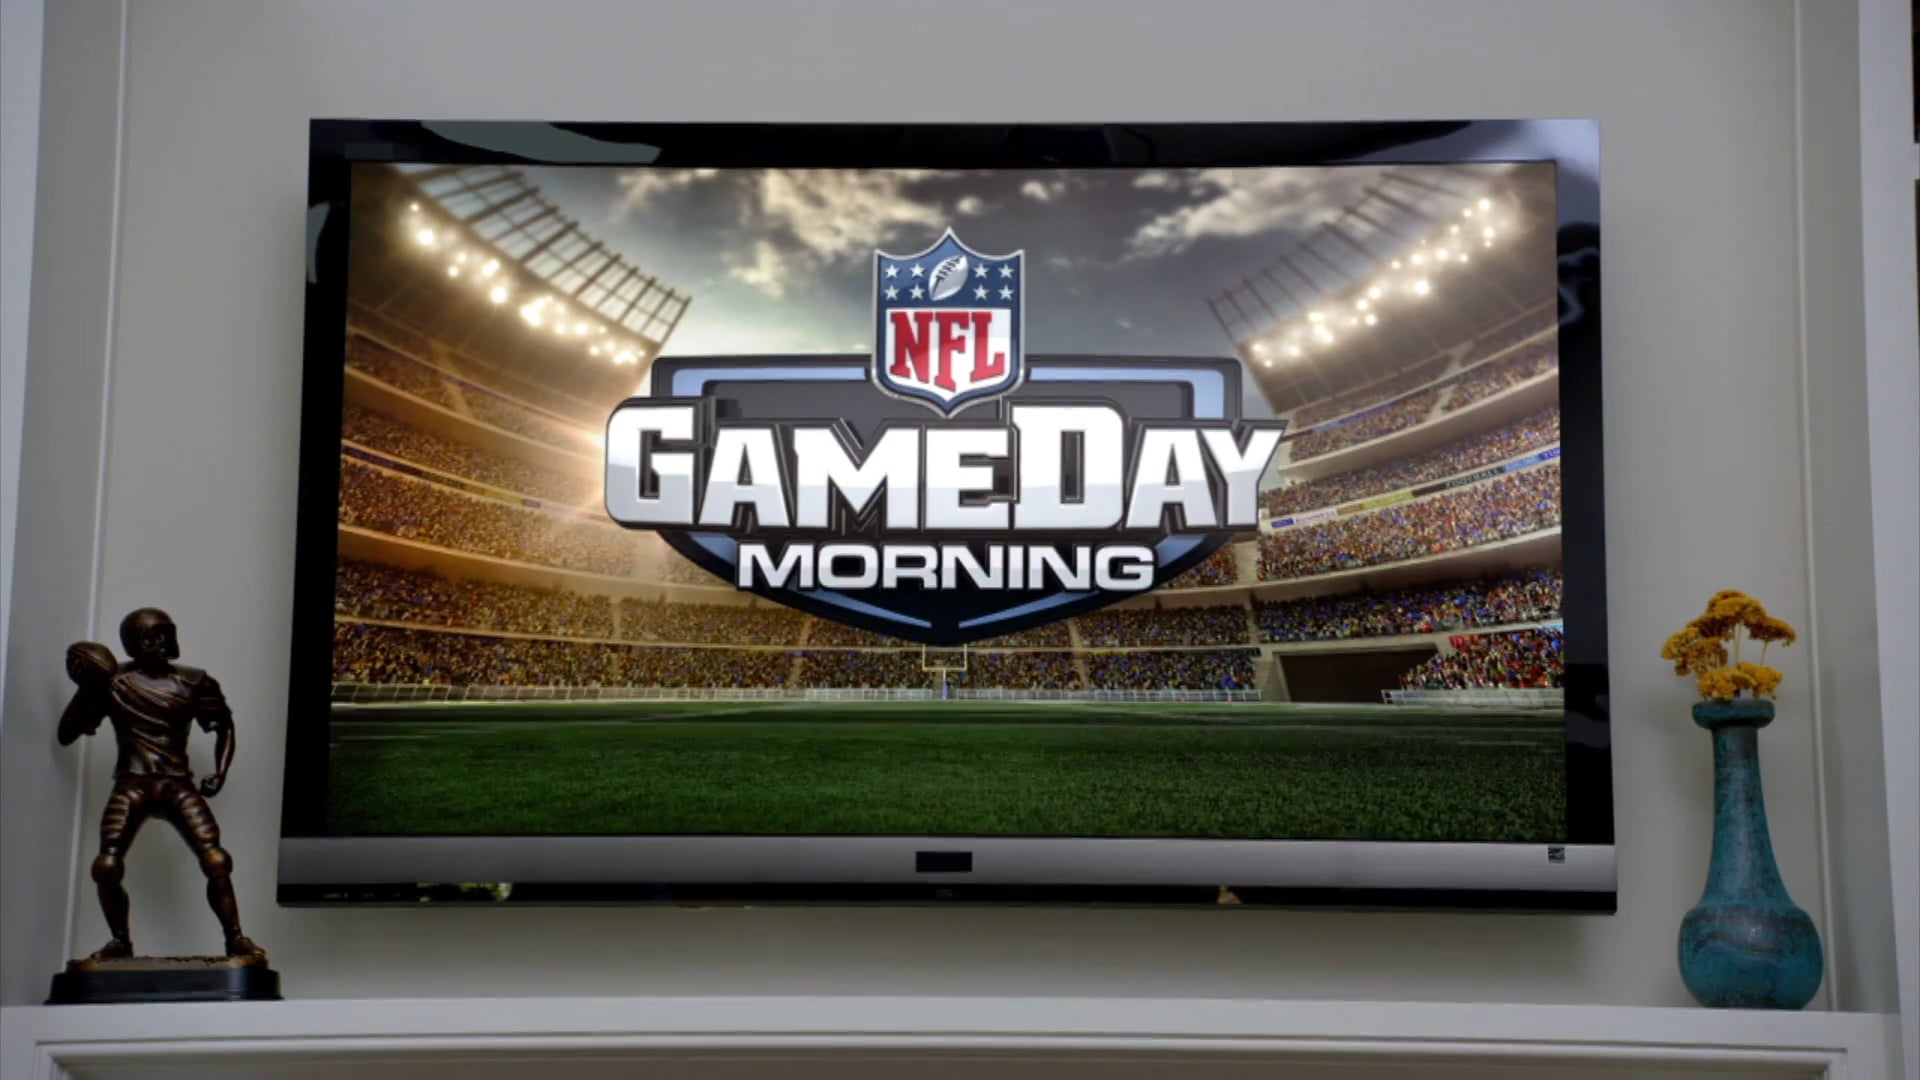 NFL Network Game Day Morning Sizzle